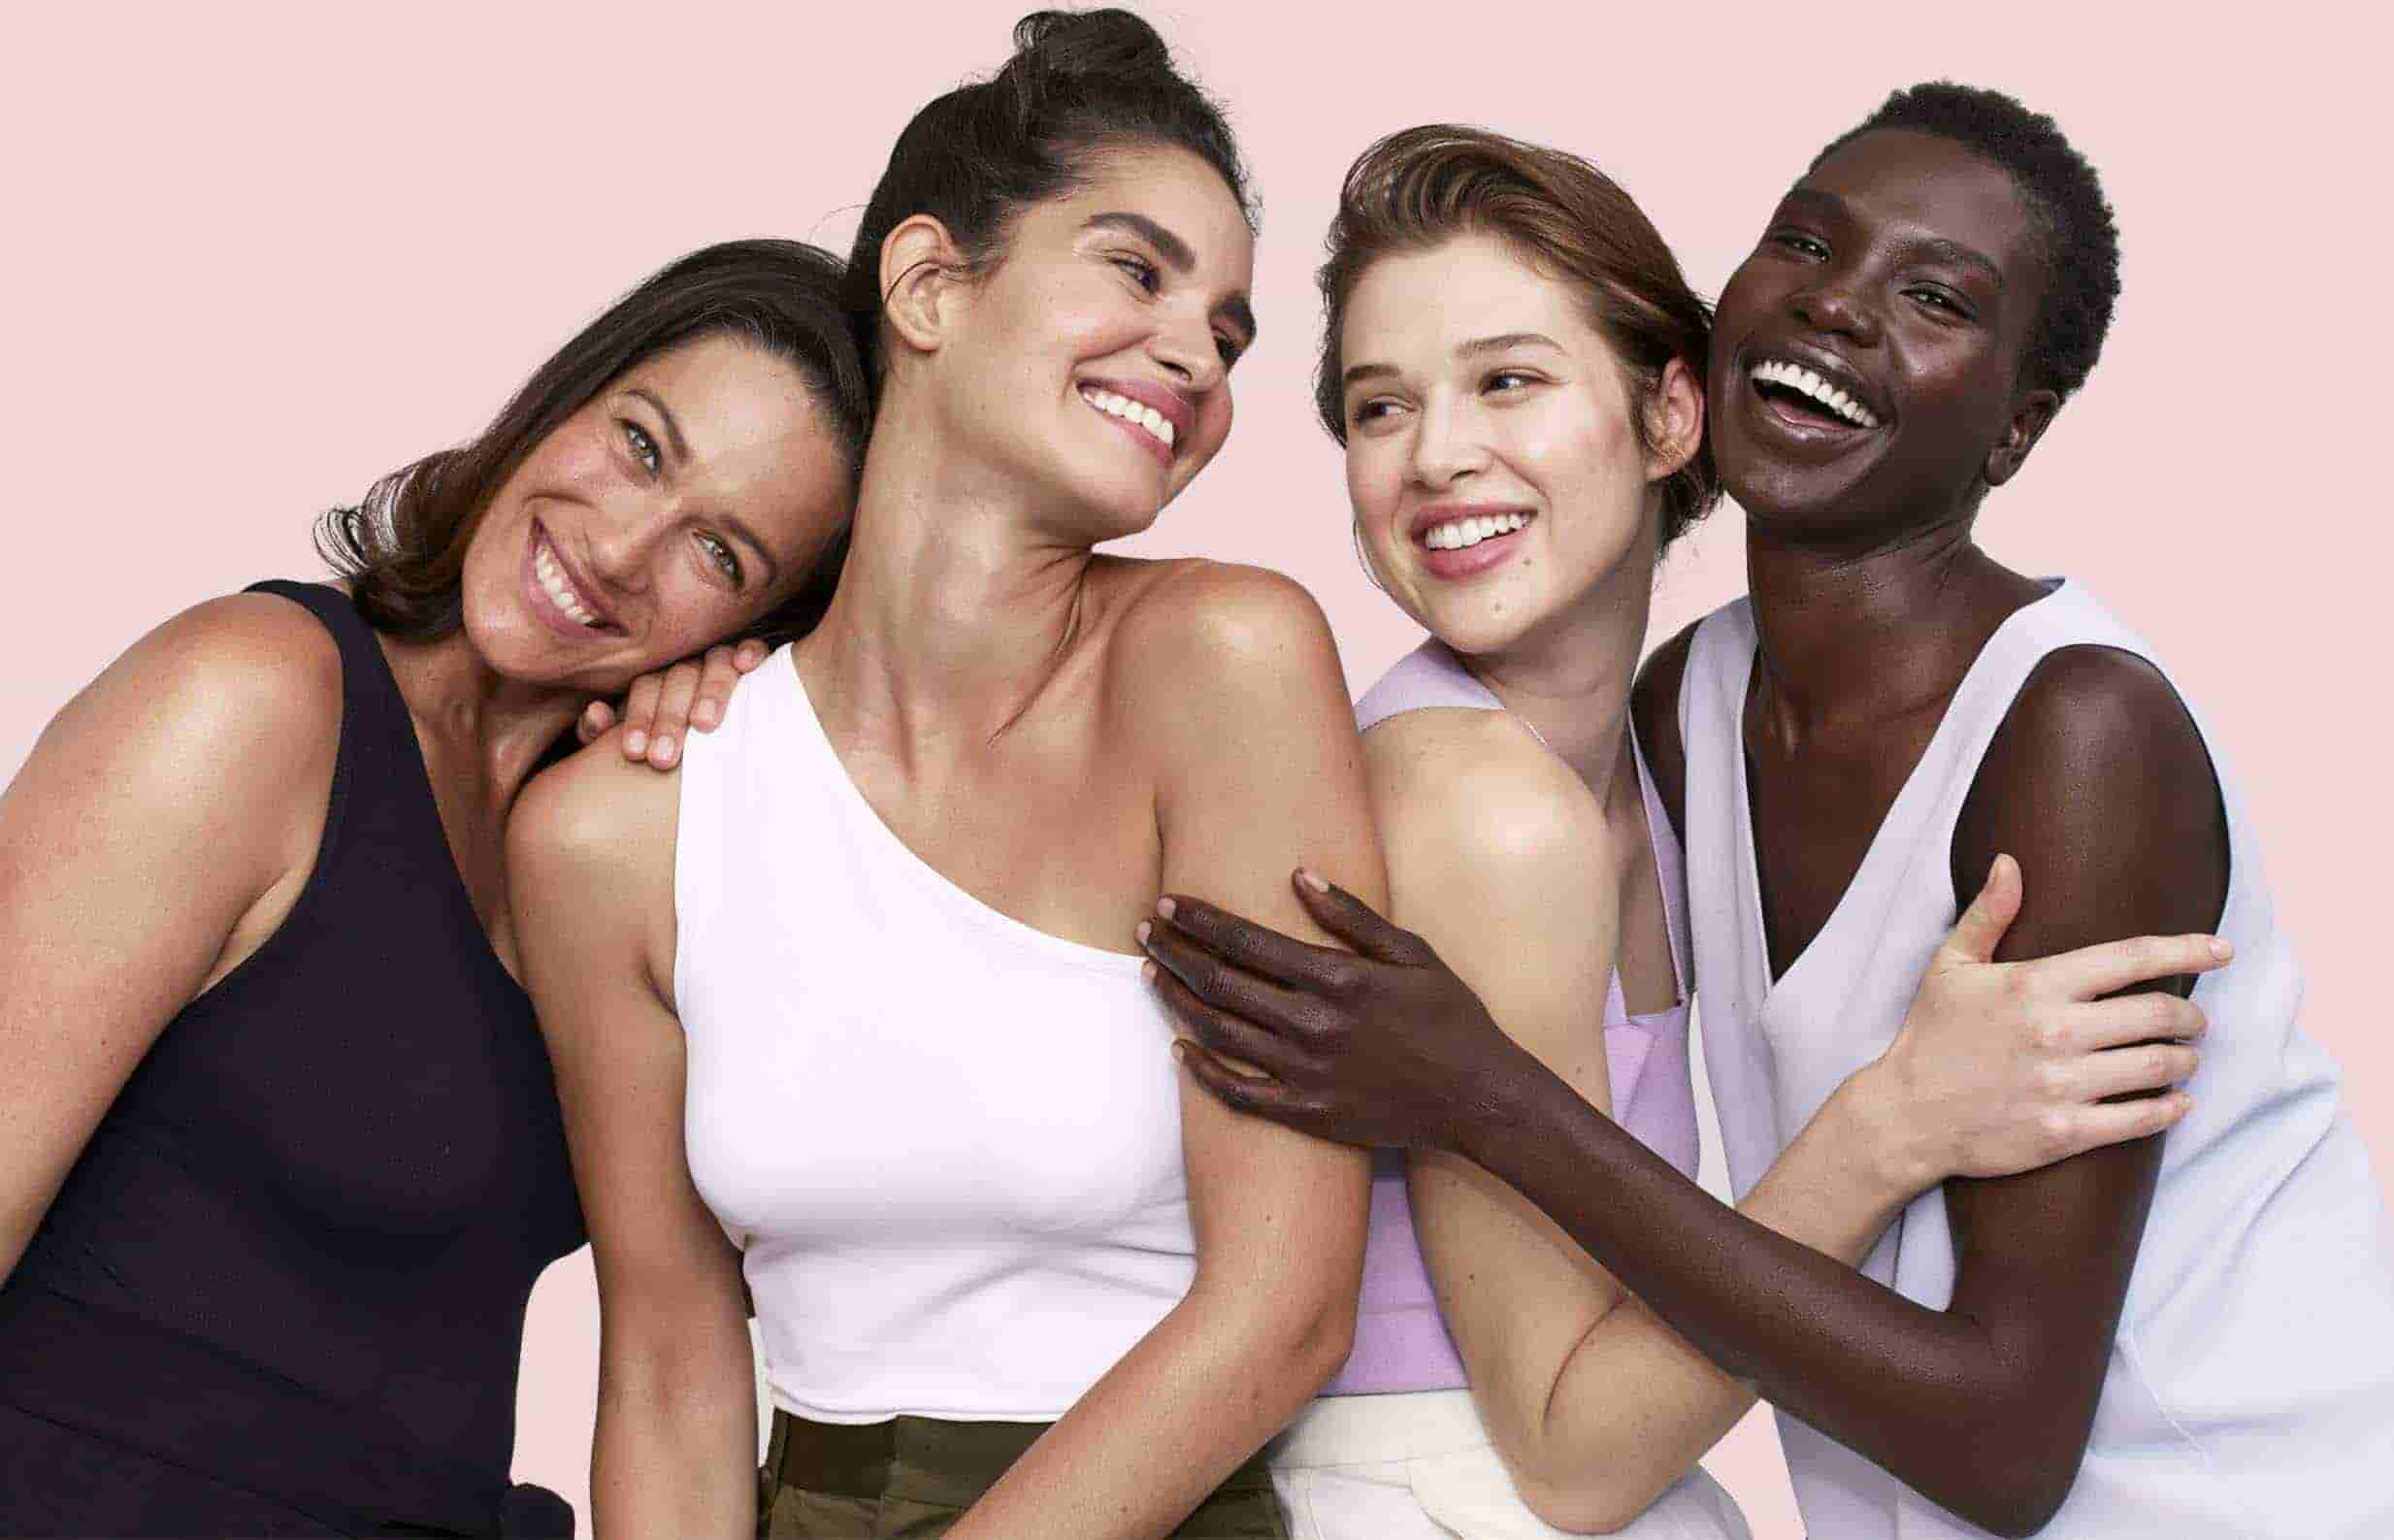 four women smiling and hugging together